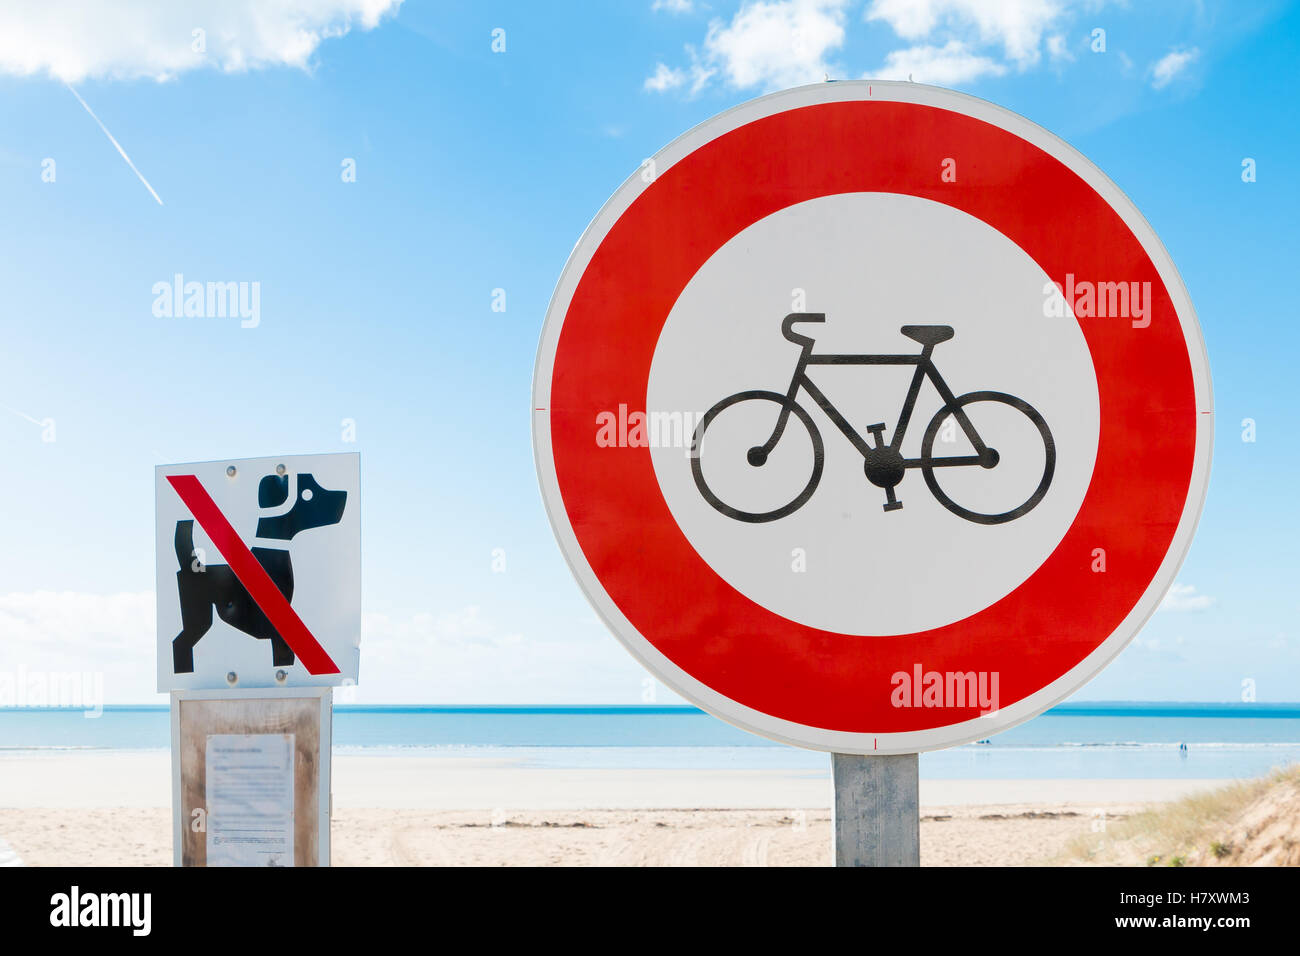 prohibits bikes sign and  prohibits dogs sign in the beach - Stock Image